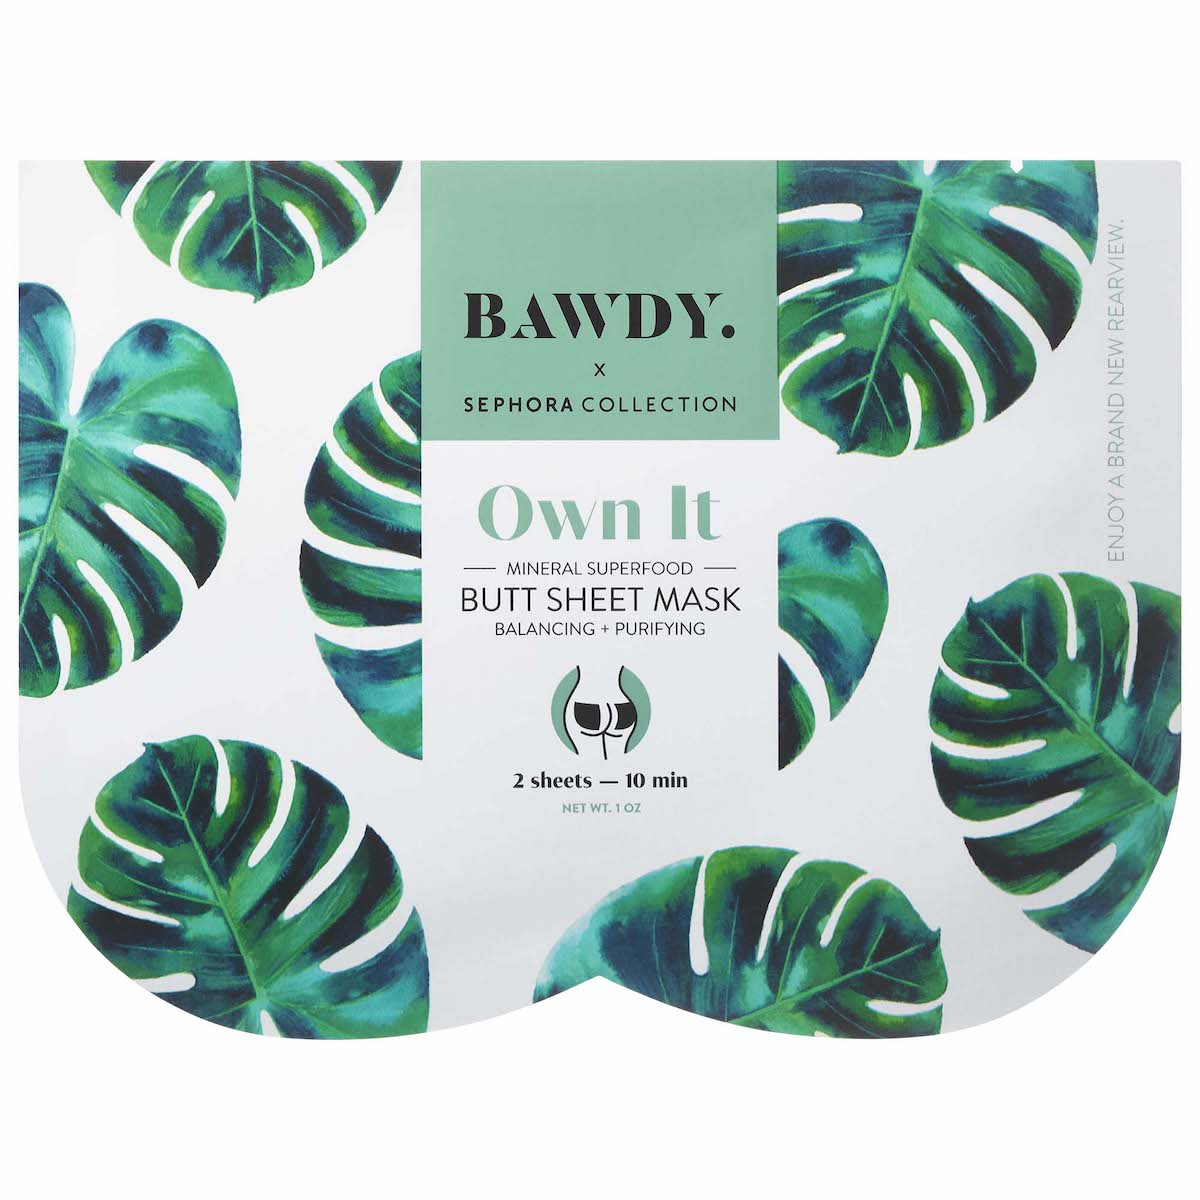 Bawdy x Sephora Collection Butt Sheet Mask (Mascarilla para Trasero)